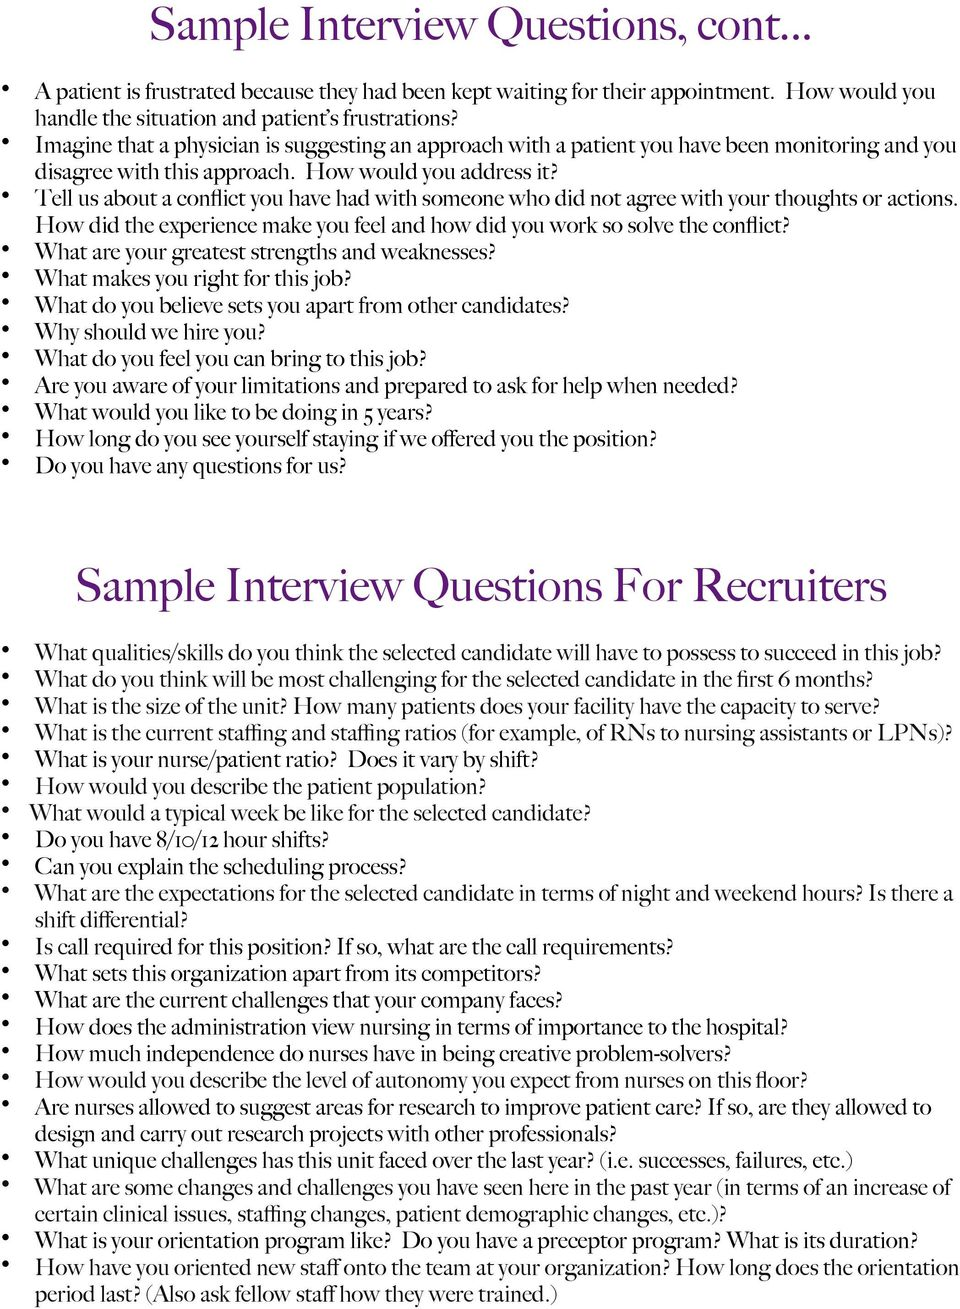 nursing interview success packet pdf tell us about a conflict you have had someone who did not agree your 9 sample interview